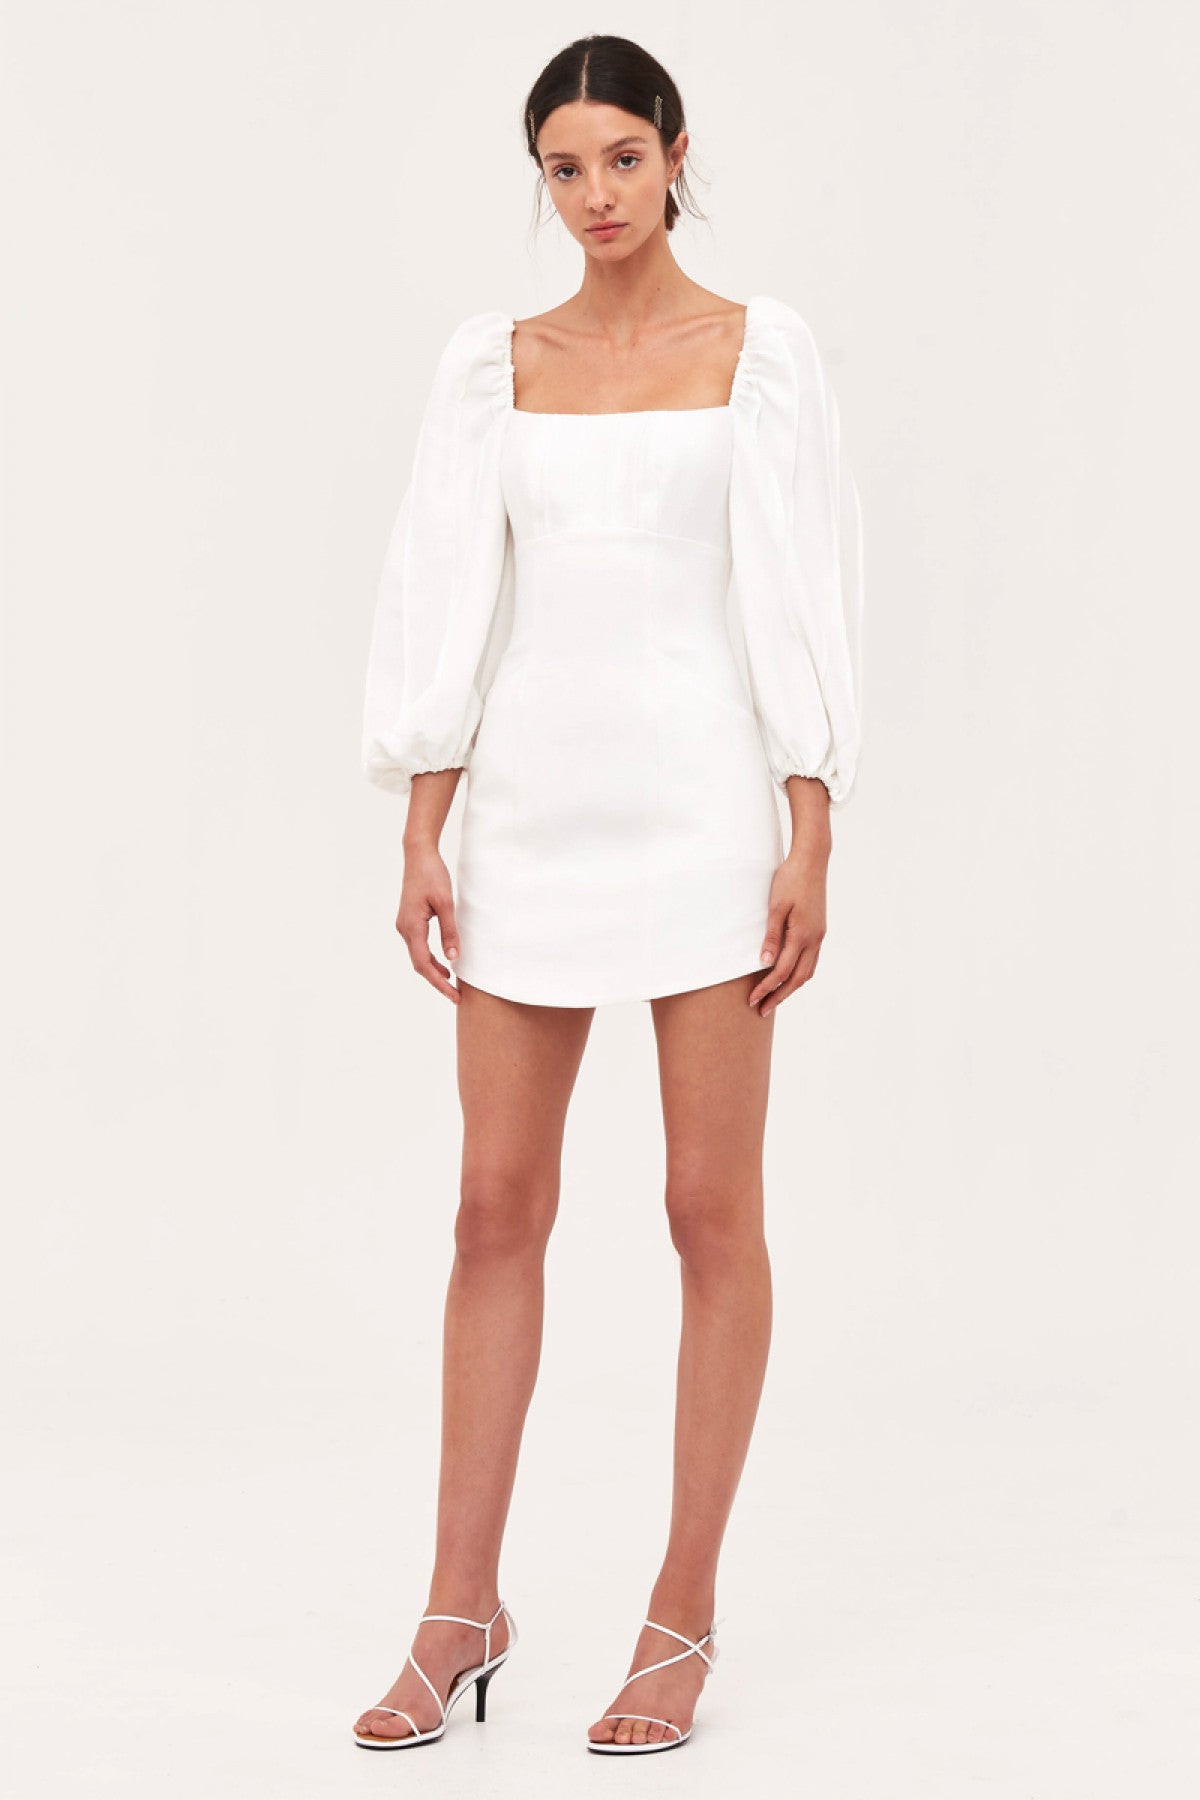 OVER AGAIN LONG SLEEVE DRESS ivory